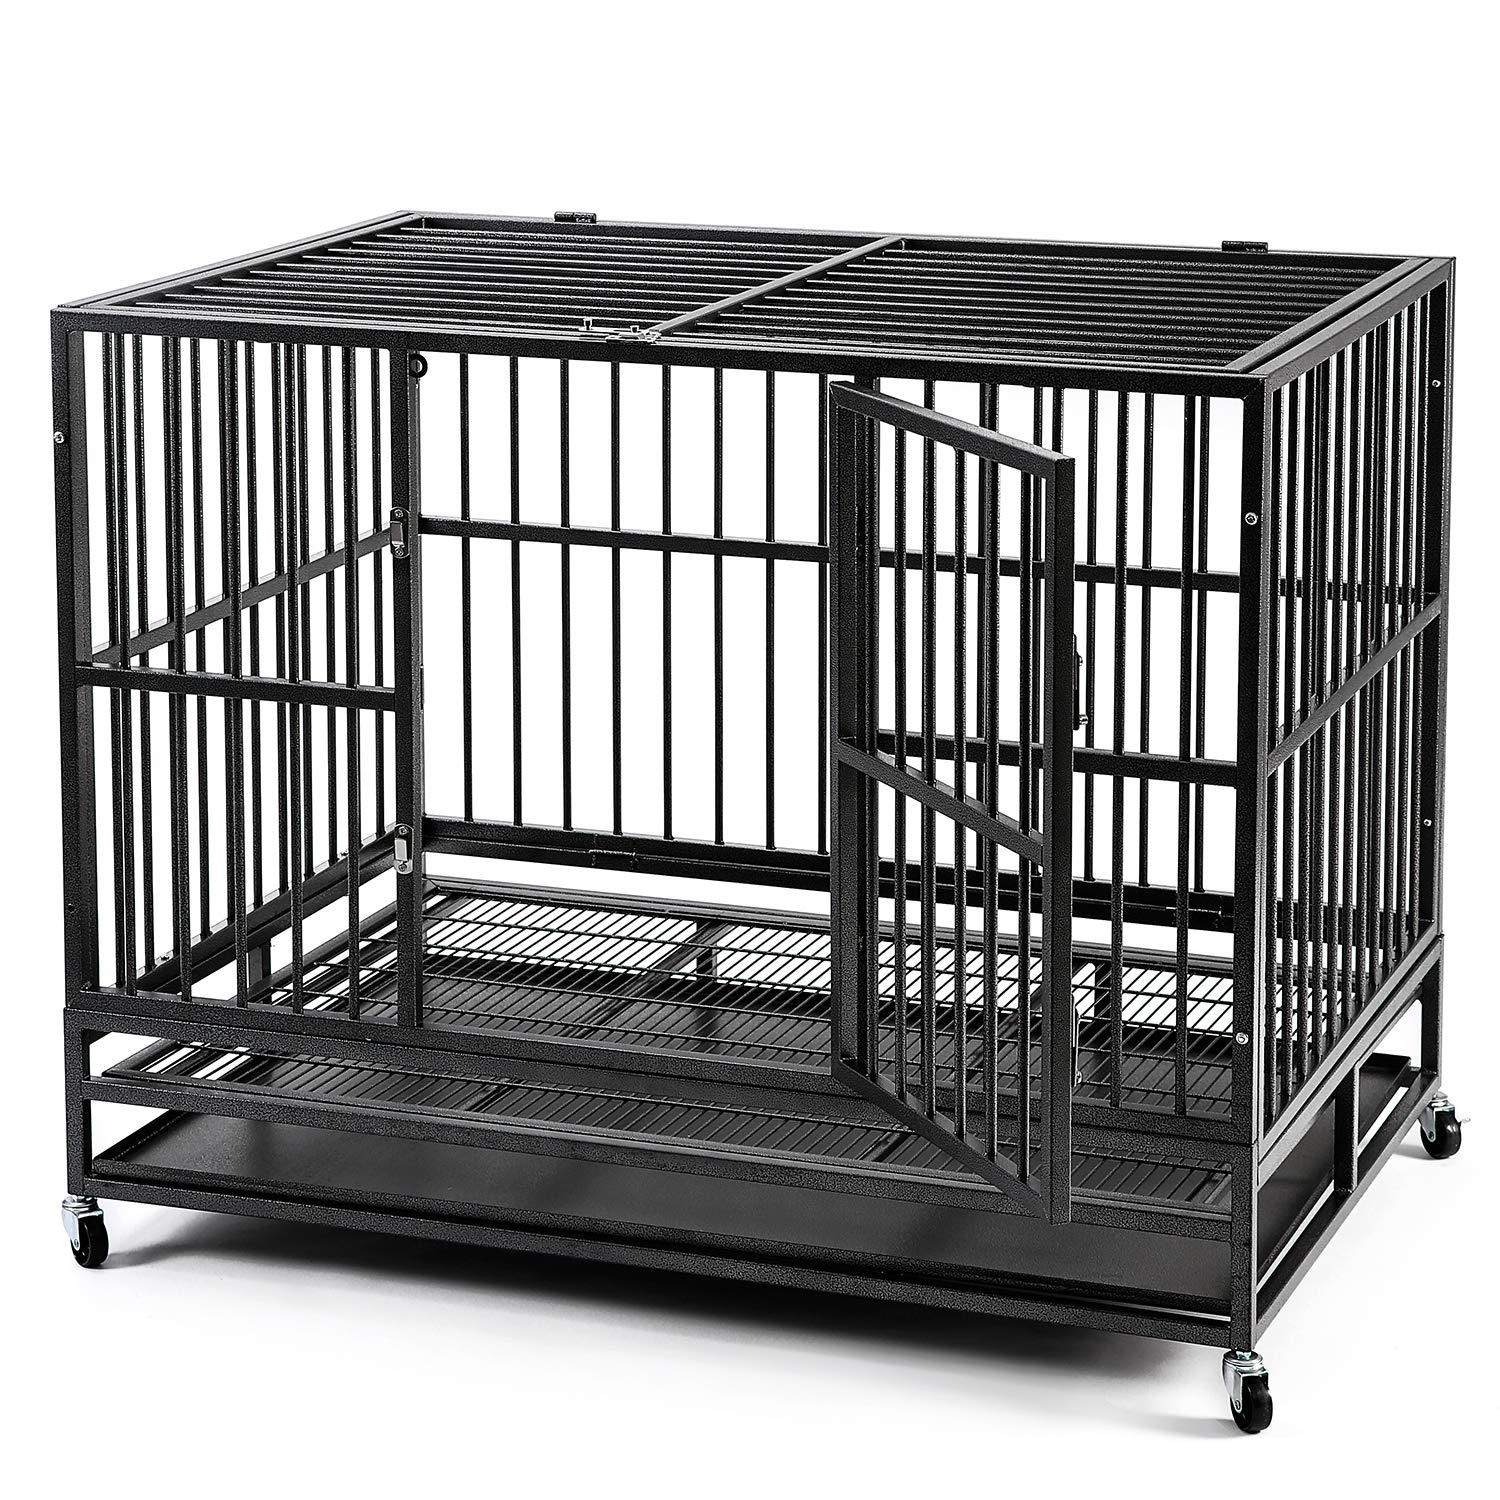 HYD-parts Steel 37inch 42inch 48inch Large Dog Cage,Heavy Duty Strong Pet Kennel Crate Playpen with Wheels for Large Dogs